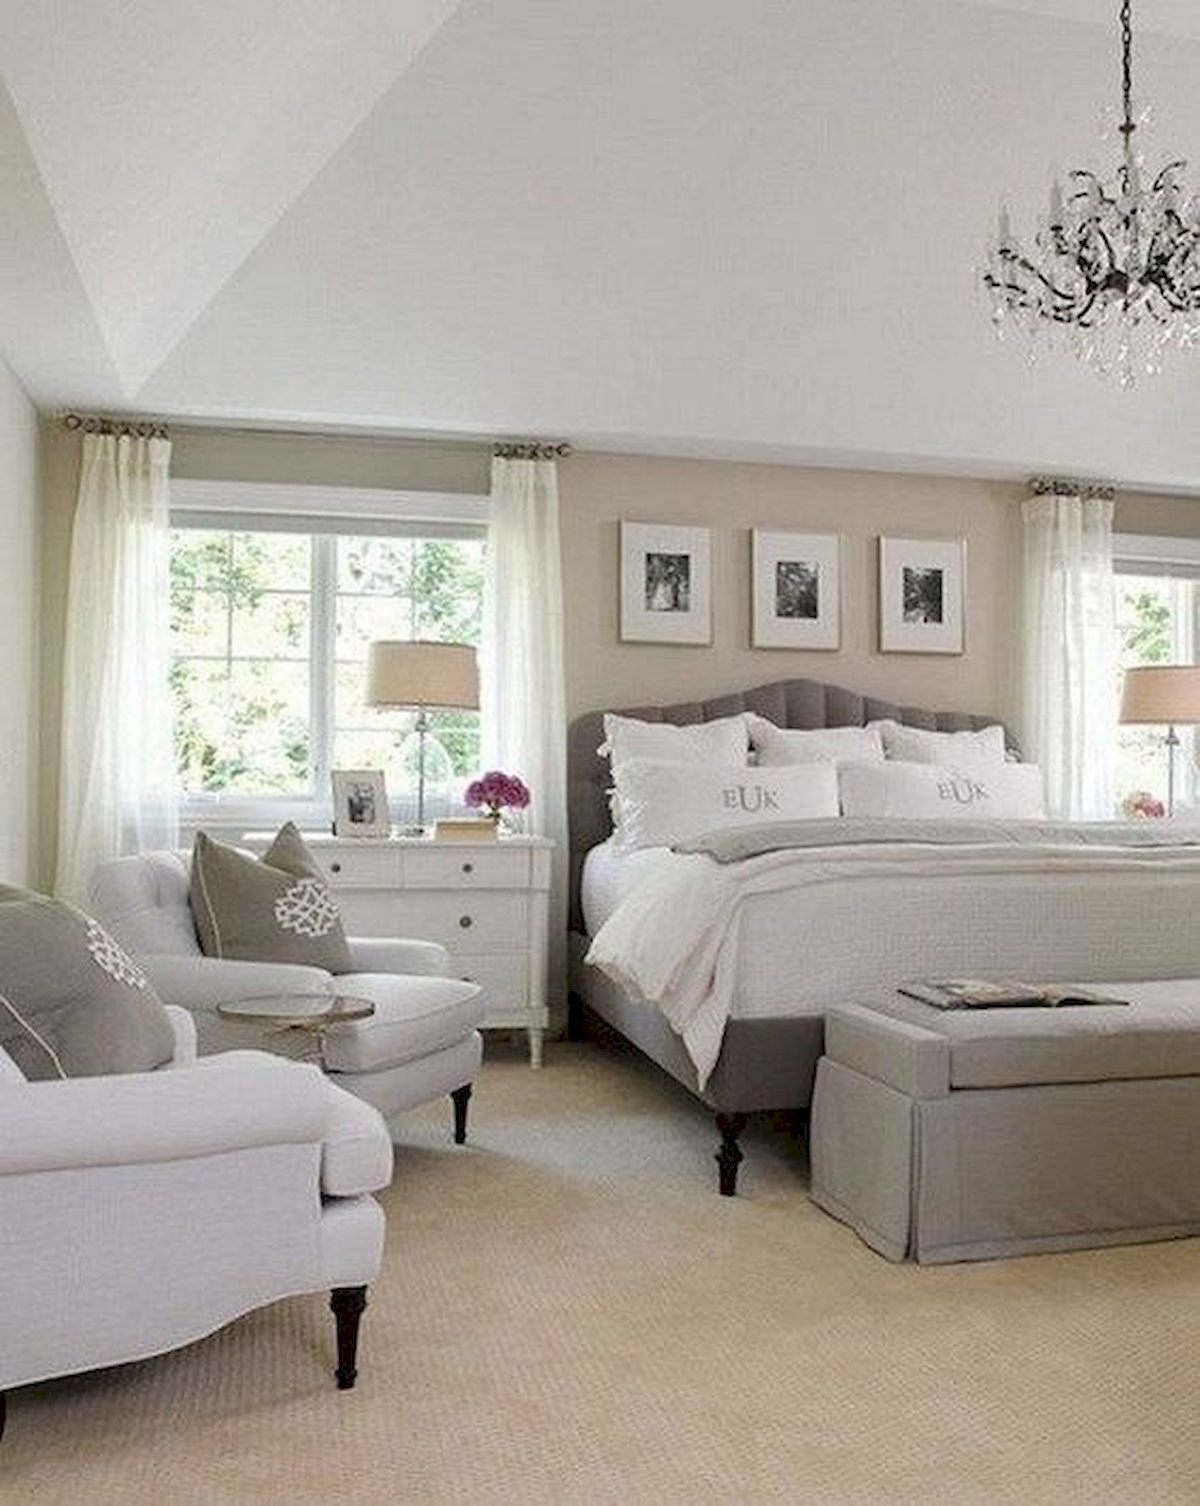 44 Awesome White Master Bedroom Design and Decor Ideas For Any Home Design (35)